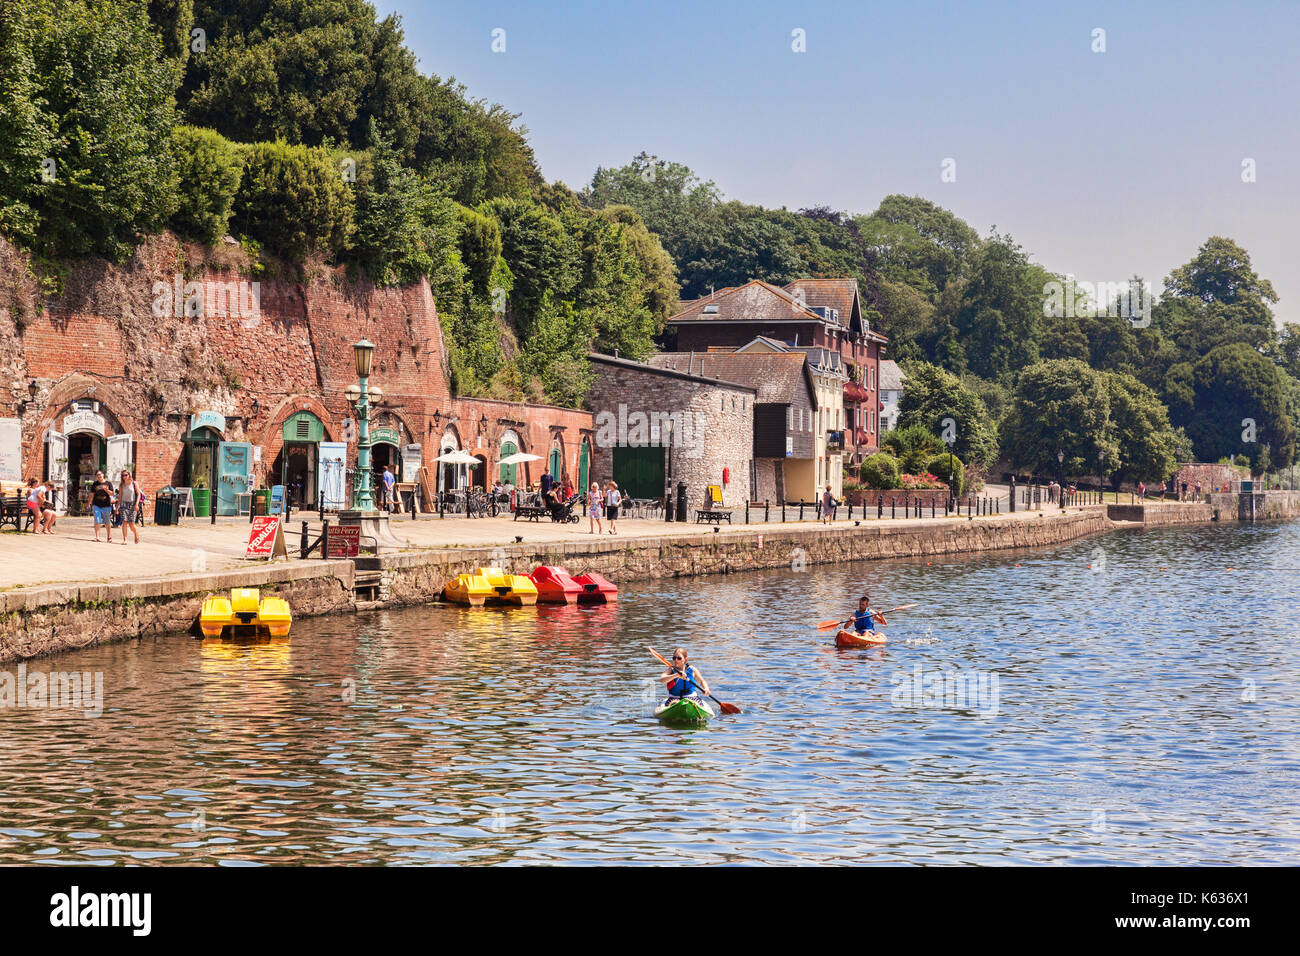 21 June 2017: Exeter, Devon, England, UK - The River Exe at Exeter Quay, with shops and people kayaking on the river. - Stock Image